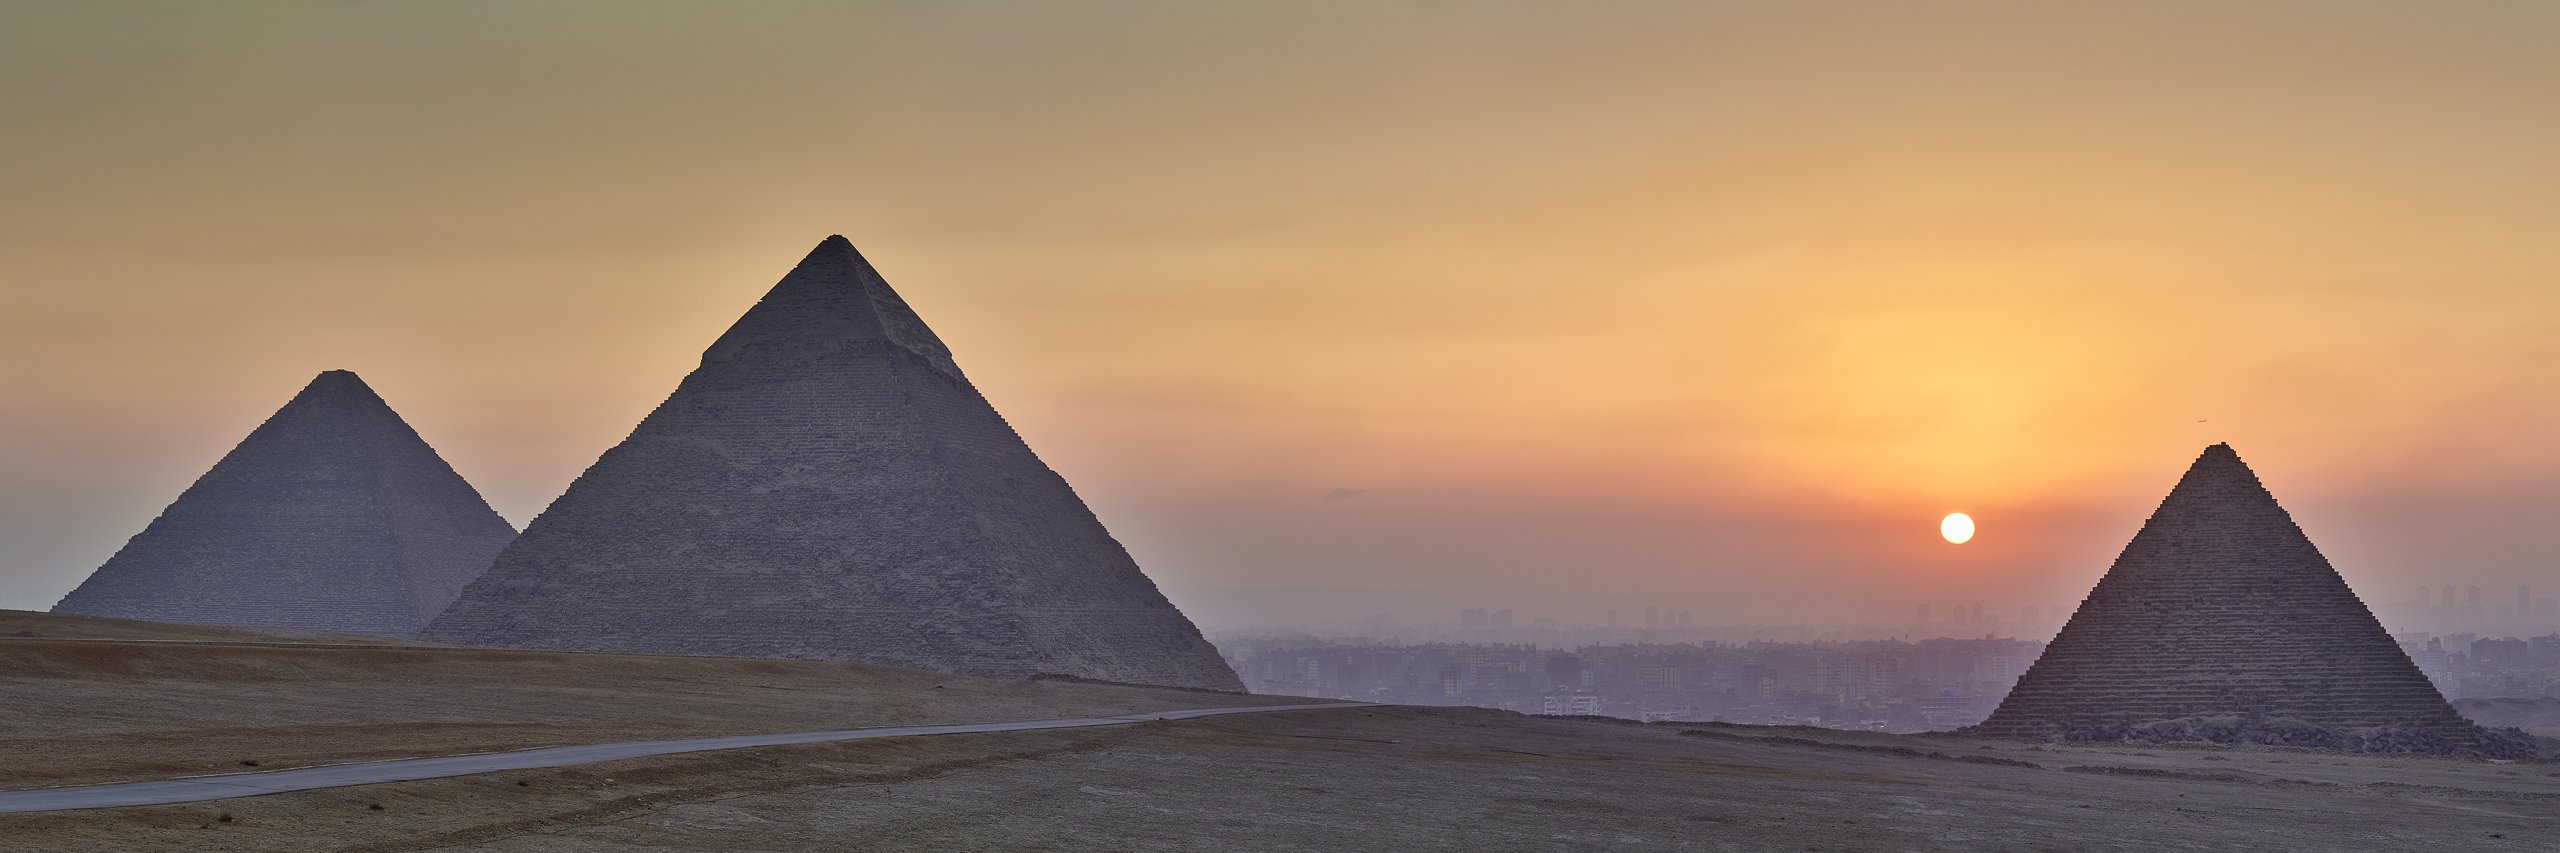 The great pyraminds of Giza, Egypt.